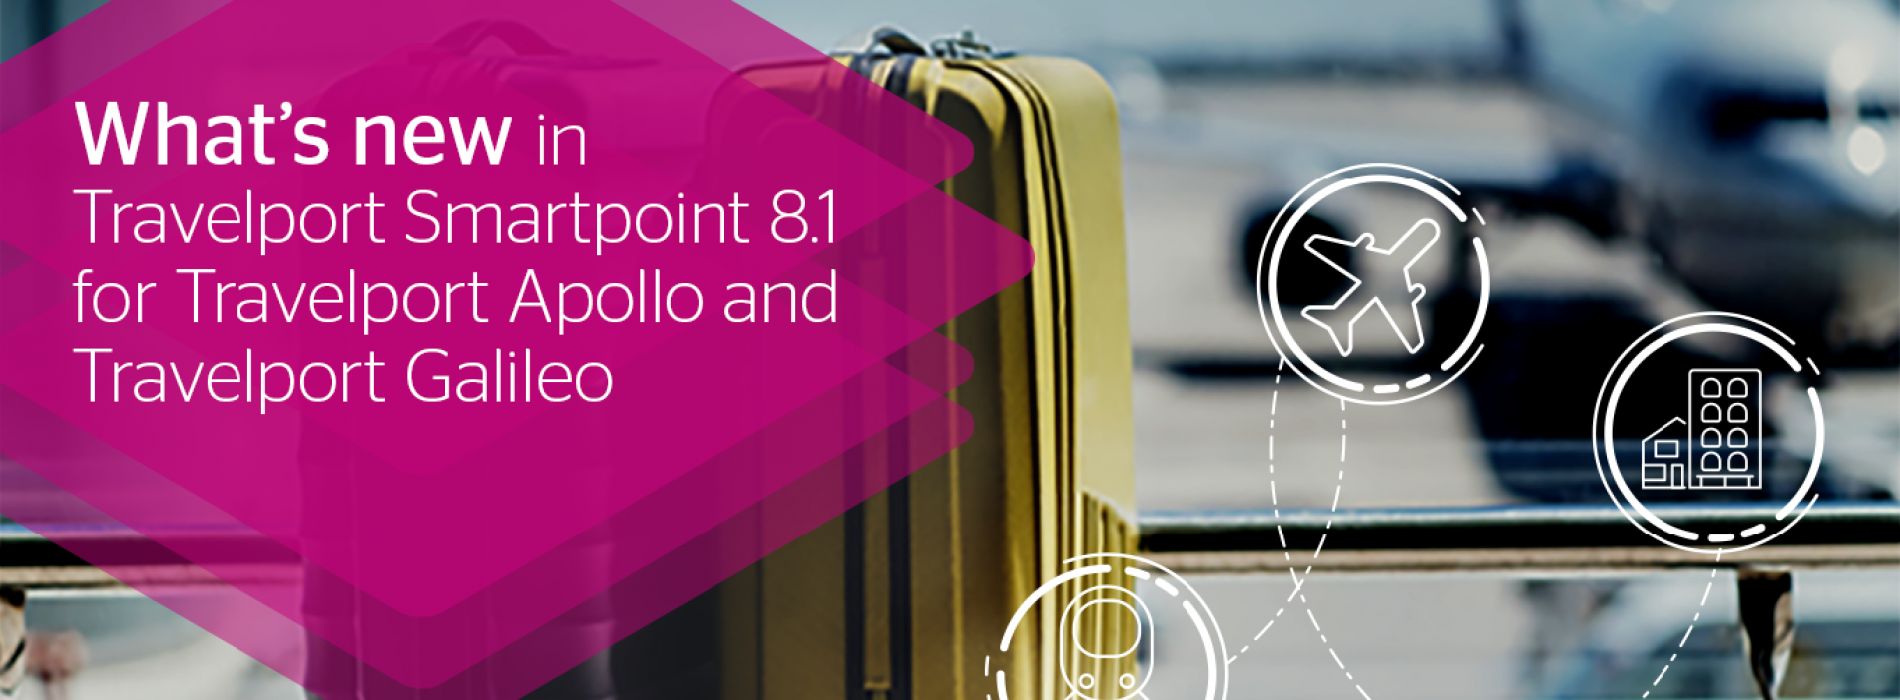 Travelport Smartpoint 8.1- A smarter way to the top